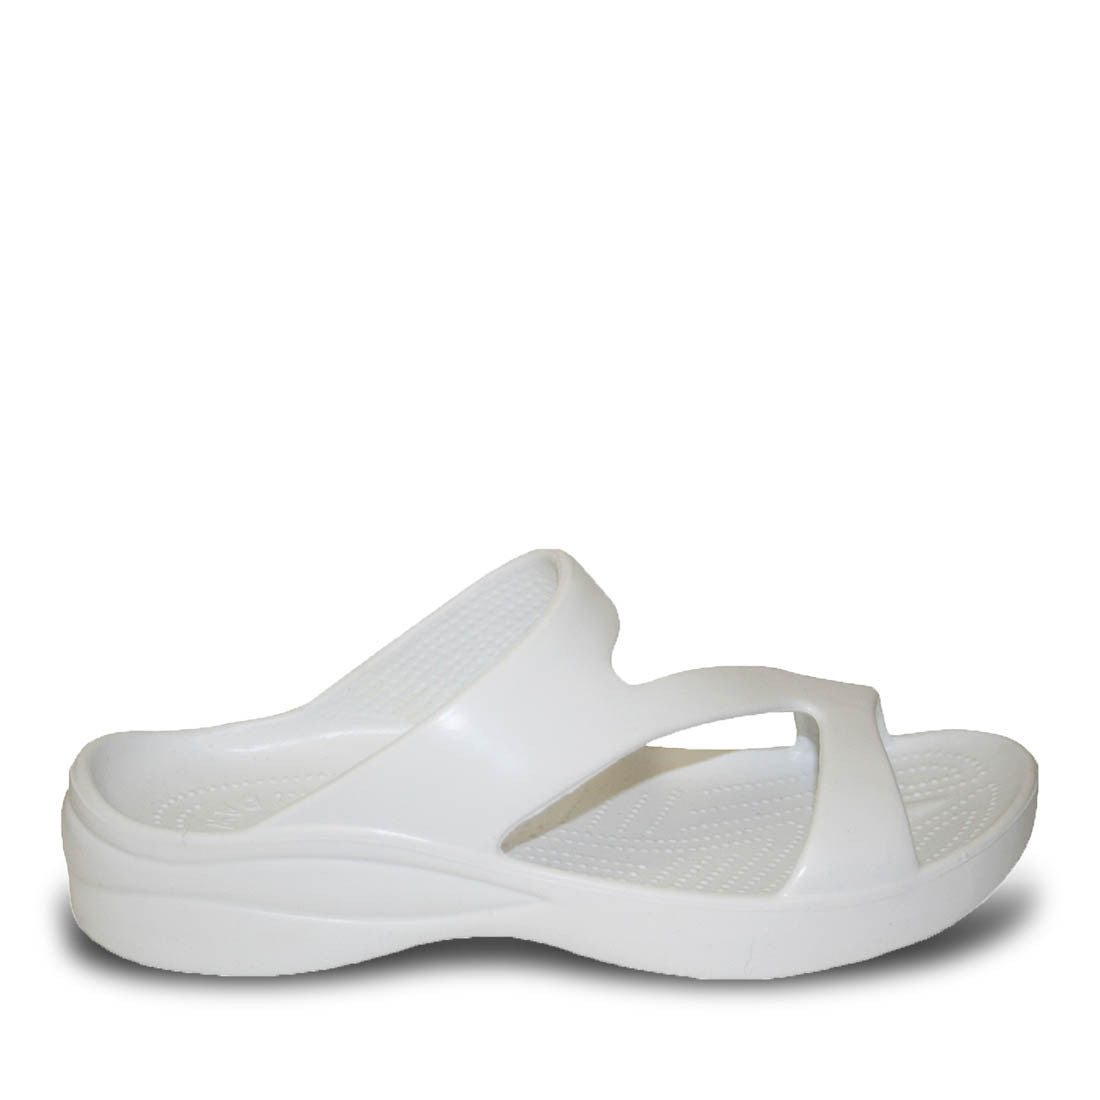 Image of Women's Z Sandals - White